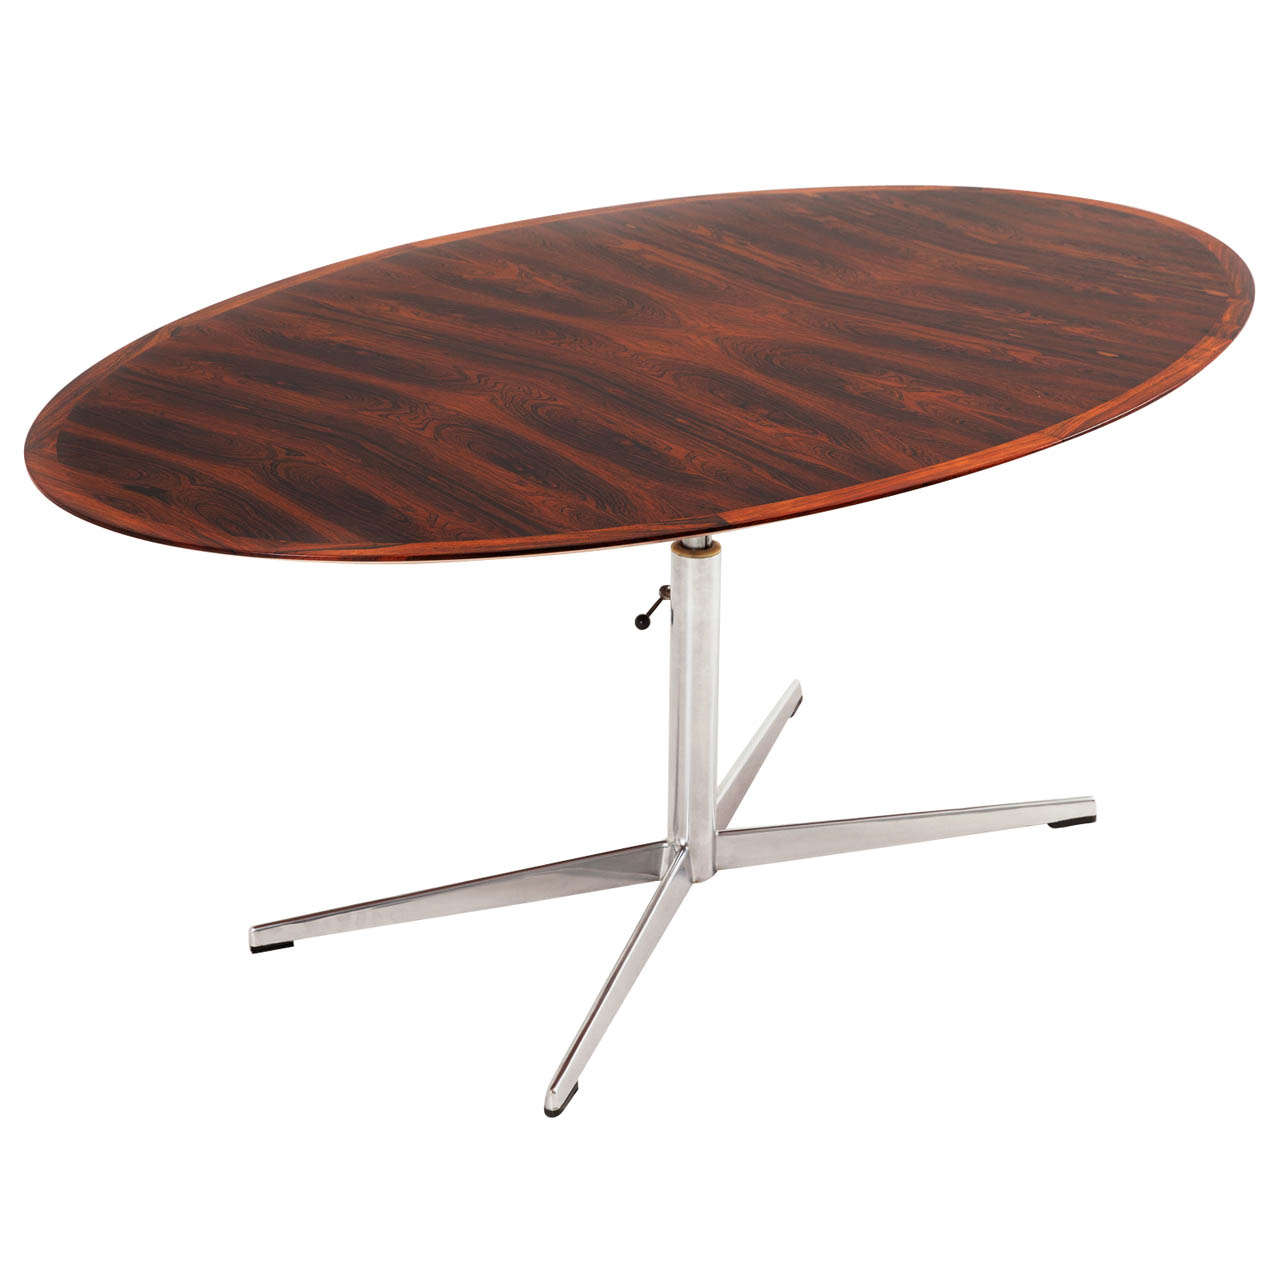 Oval rosewood table with height adjustable pedestal base at 1stdibs - Table basse ajustable ...